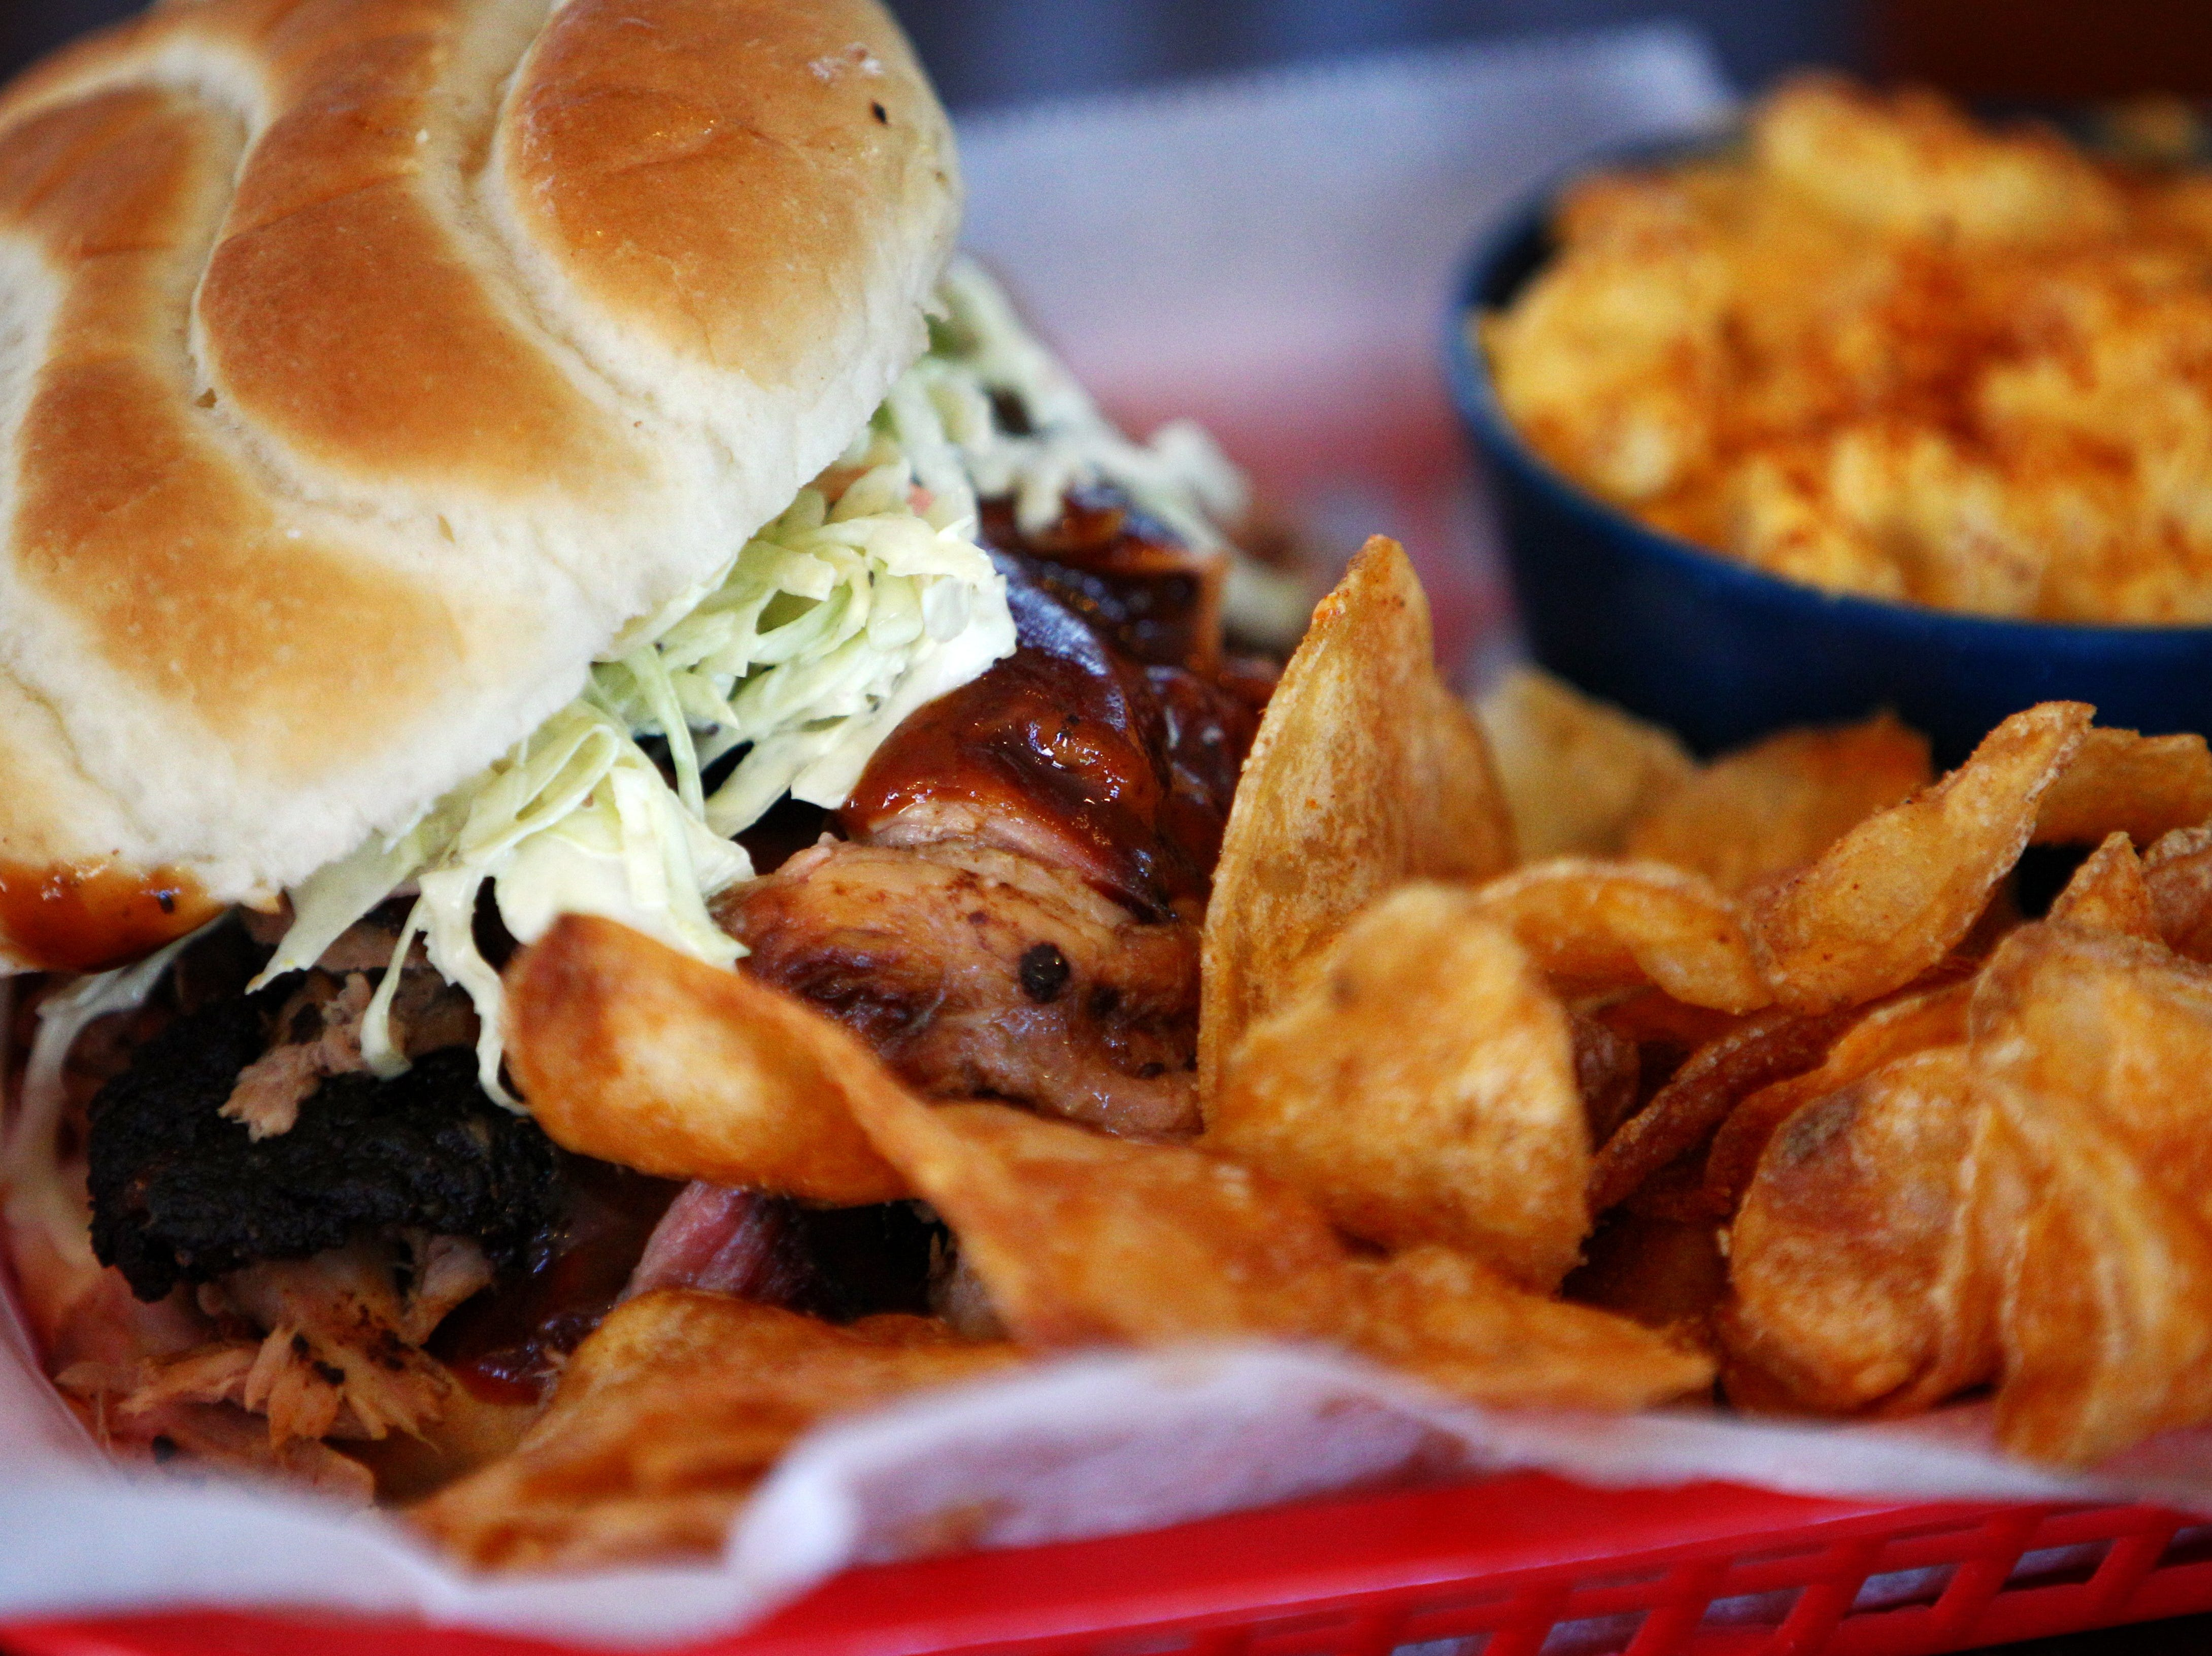 The jumbo pork sandwich with homemade barbecue chips and mac and cheese is a popular item at Central BBQ downtown on Butler behind the National Civil Rights Museum on May 14, 2013.